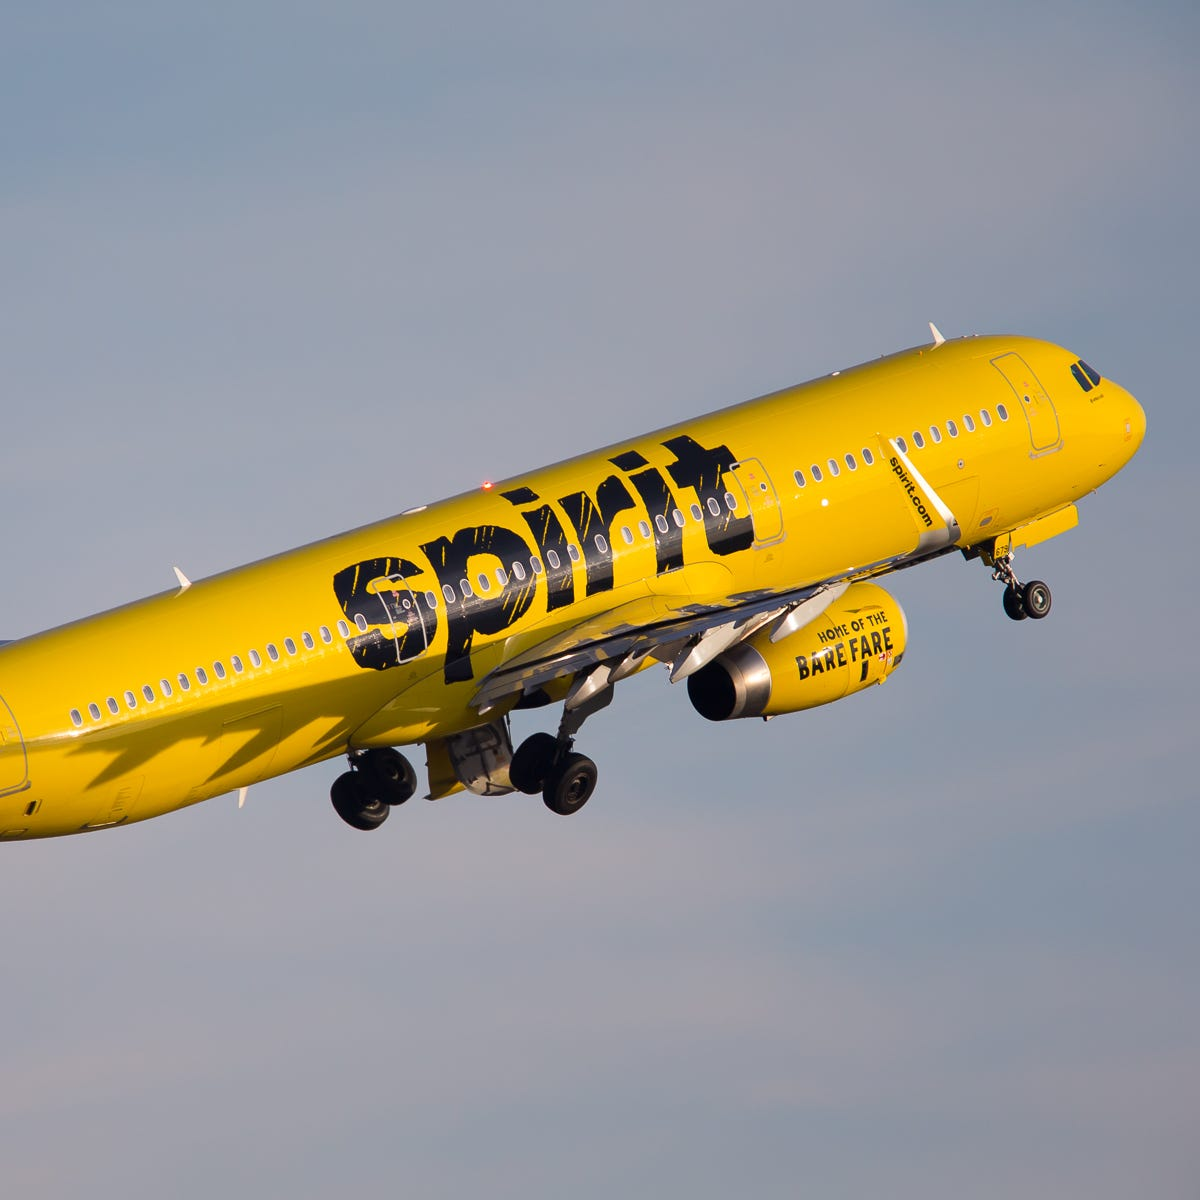 A Spirit Airlines Airbus A321 departs Seattle-Tacoma International Airport in November 2018.